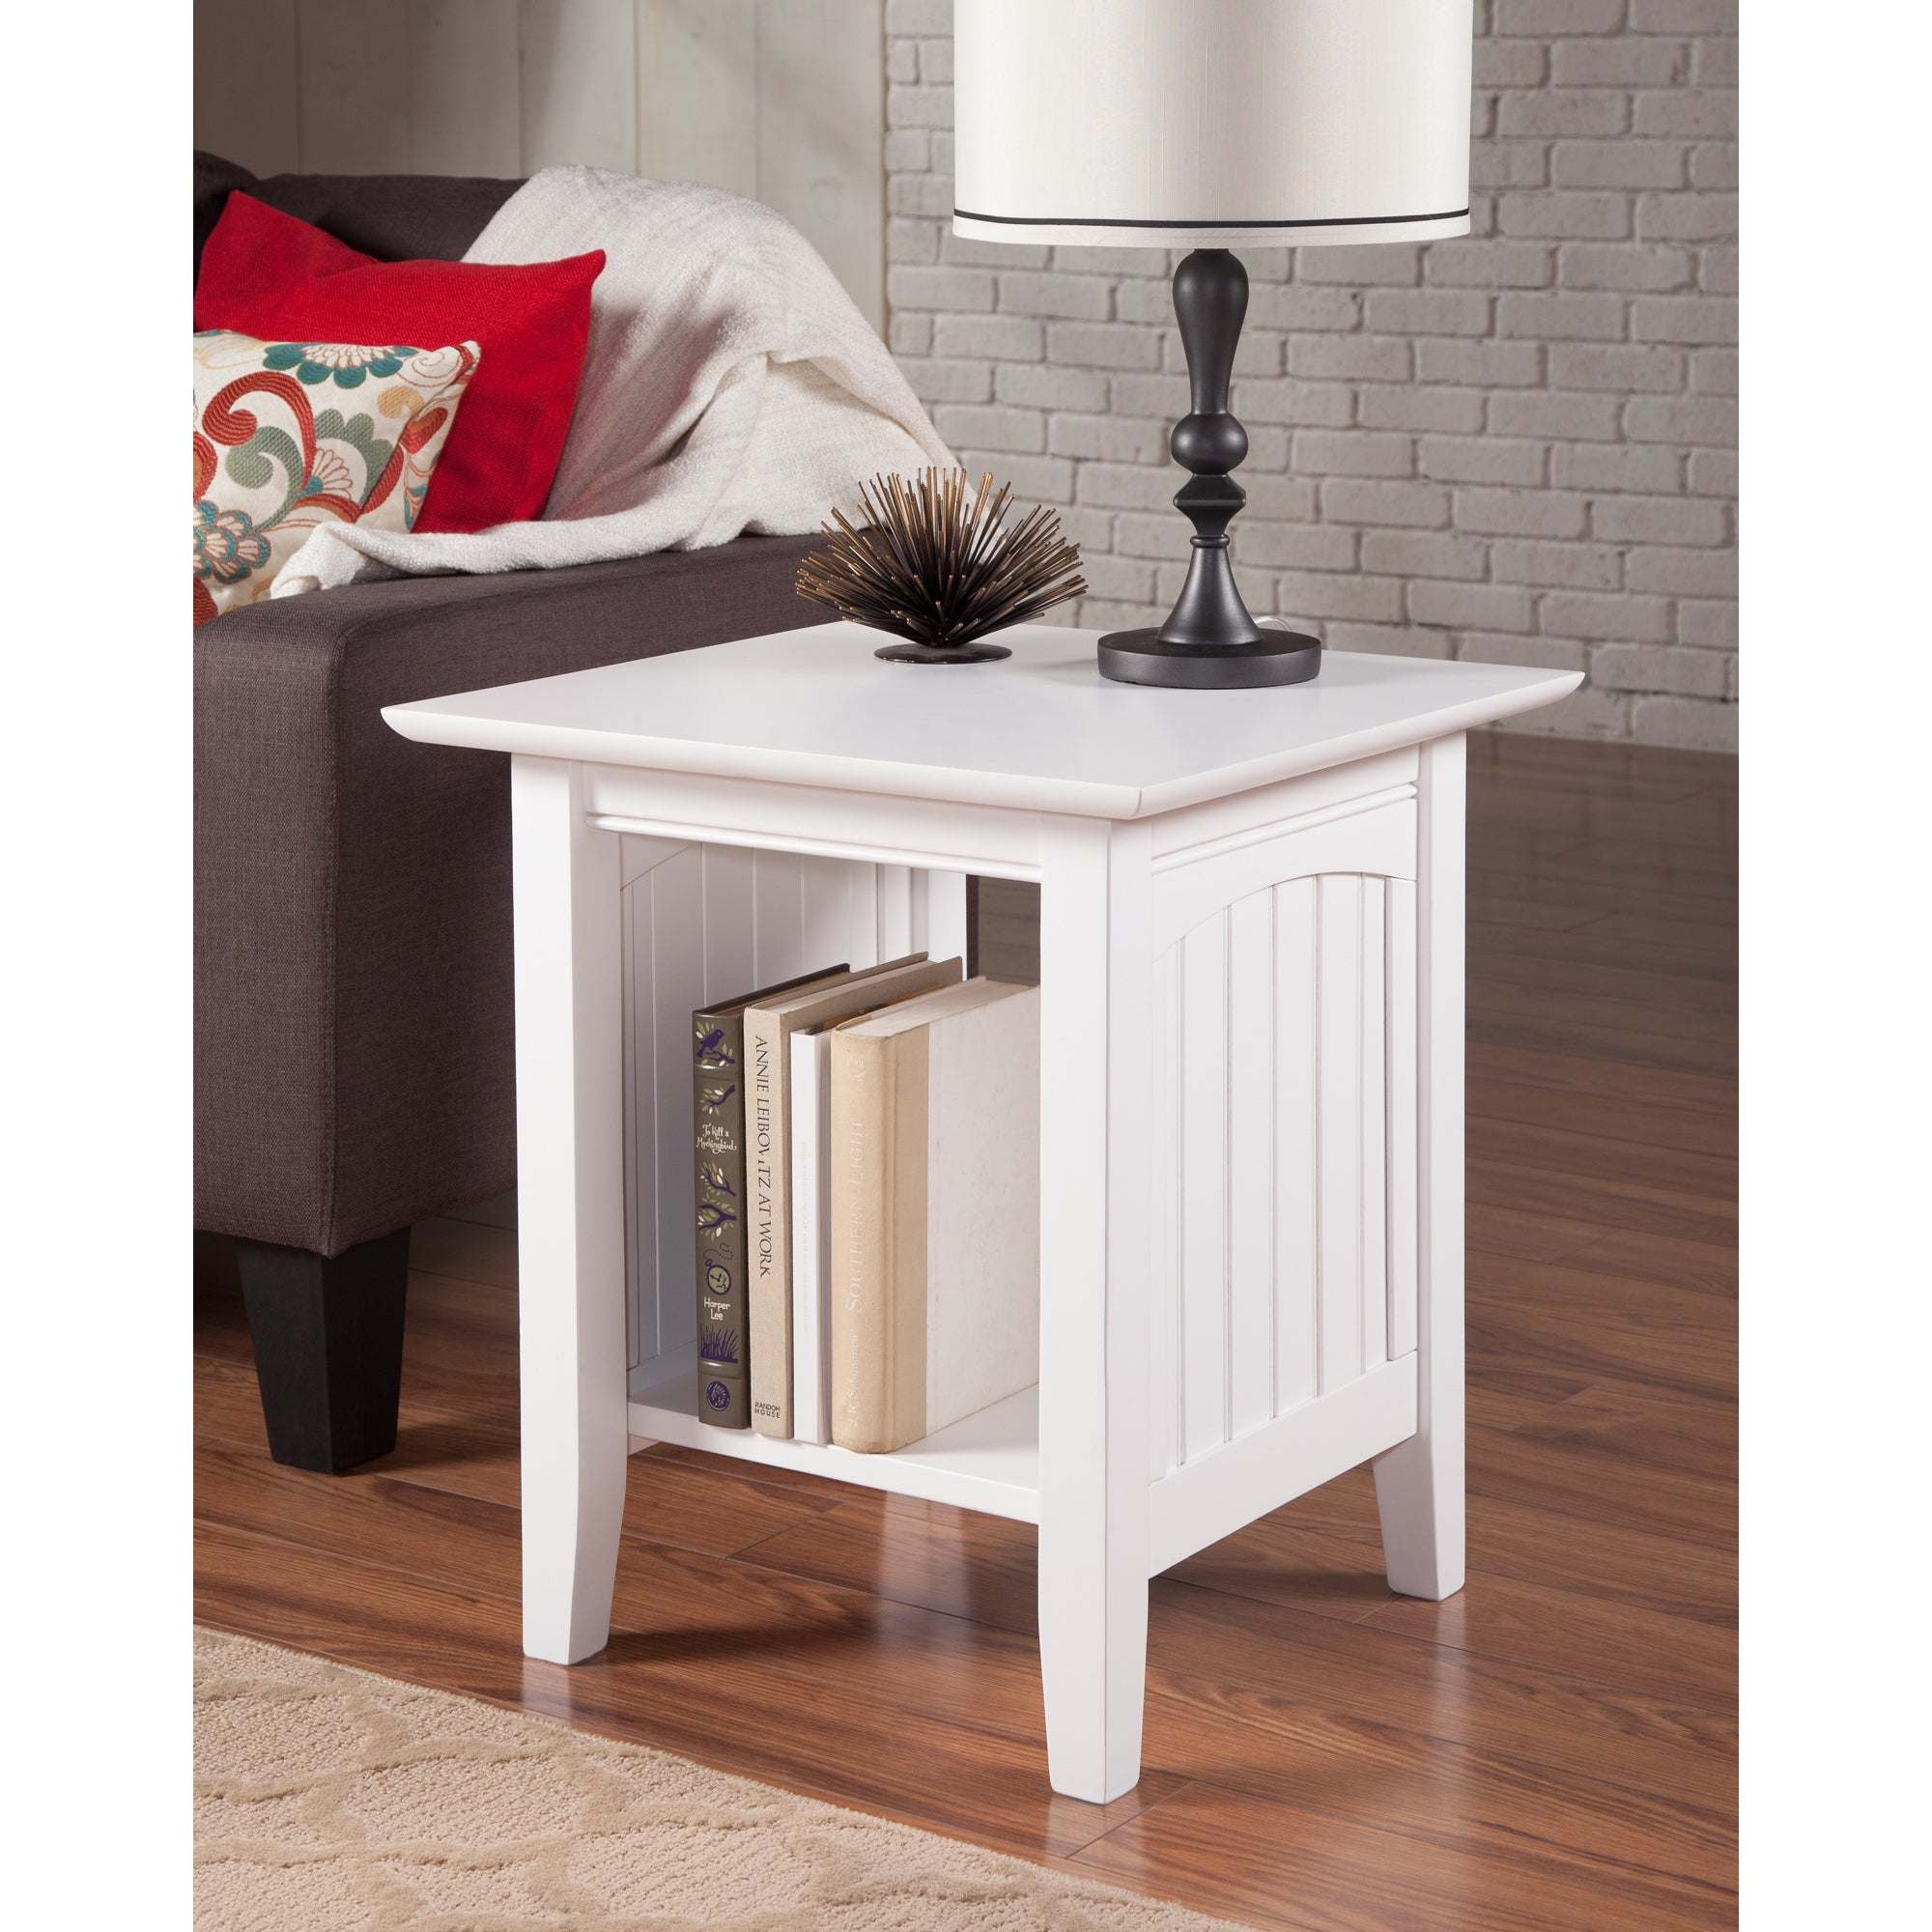 end on ideas table white sightly casters tingby tables photos side